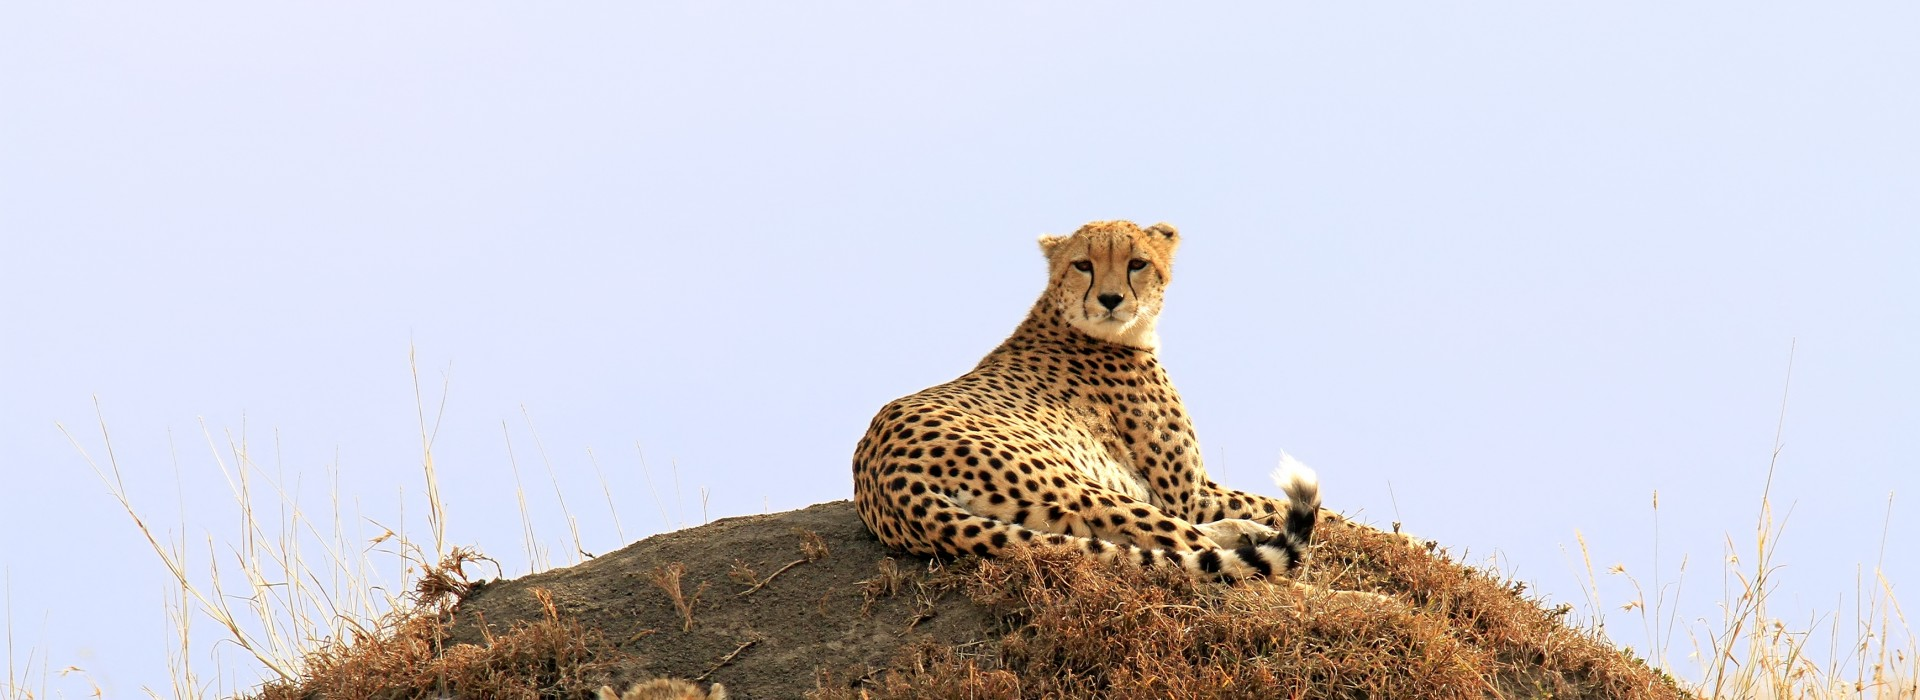 Travelling Kenya - Tours and Holiday Packages in Kenya